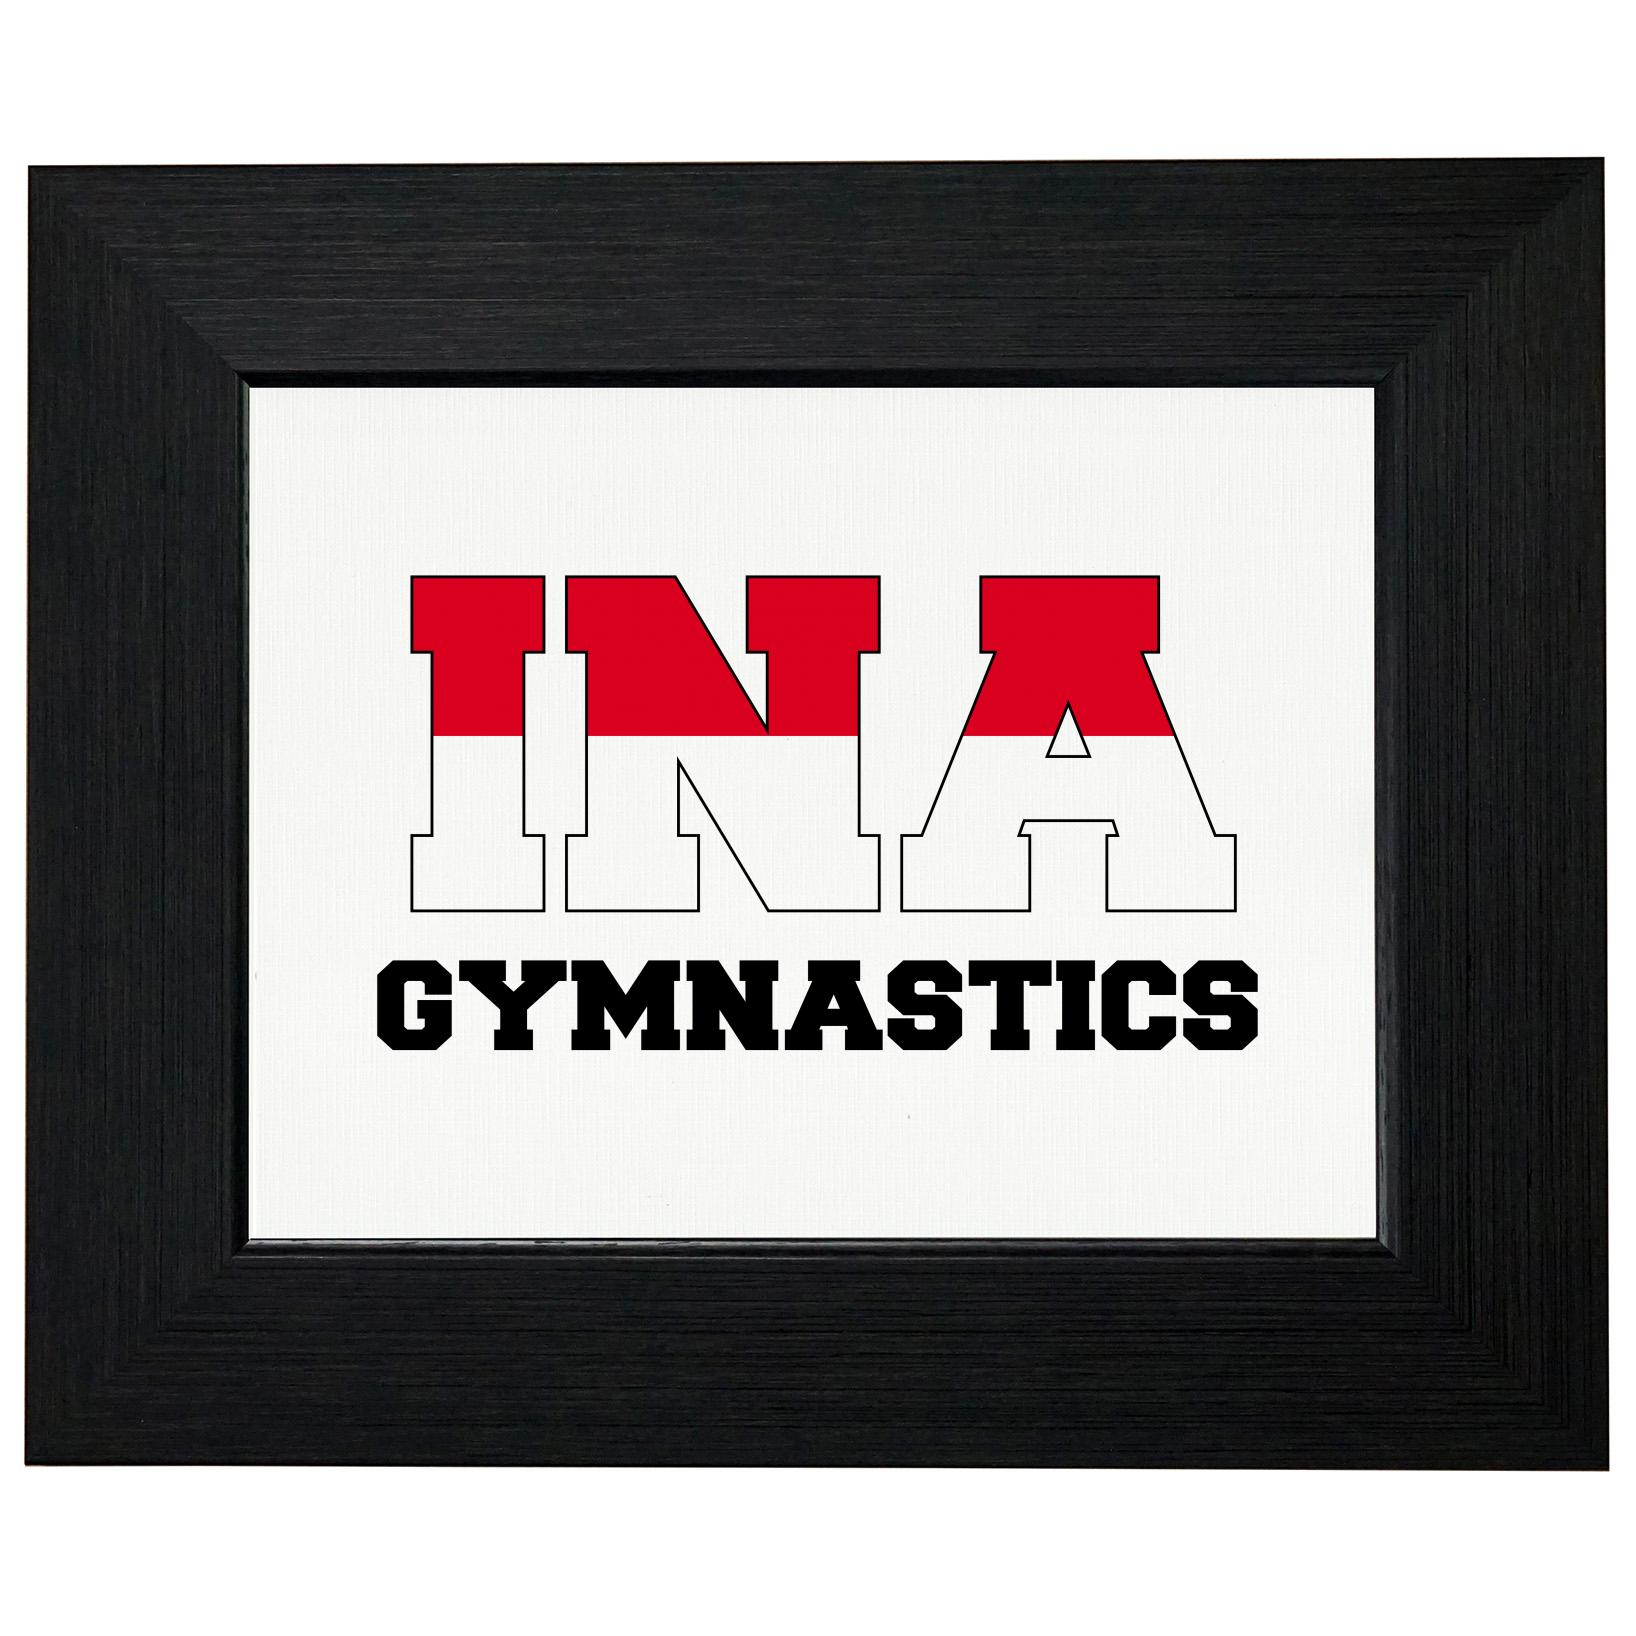 Indonesia Gymnastics - Olympic Games - Rio - Flag Framed Print Poster Wall or Desk Mount Options